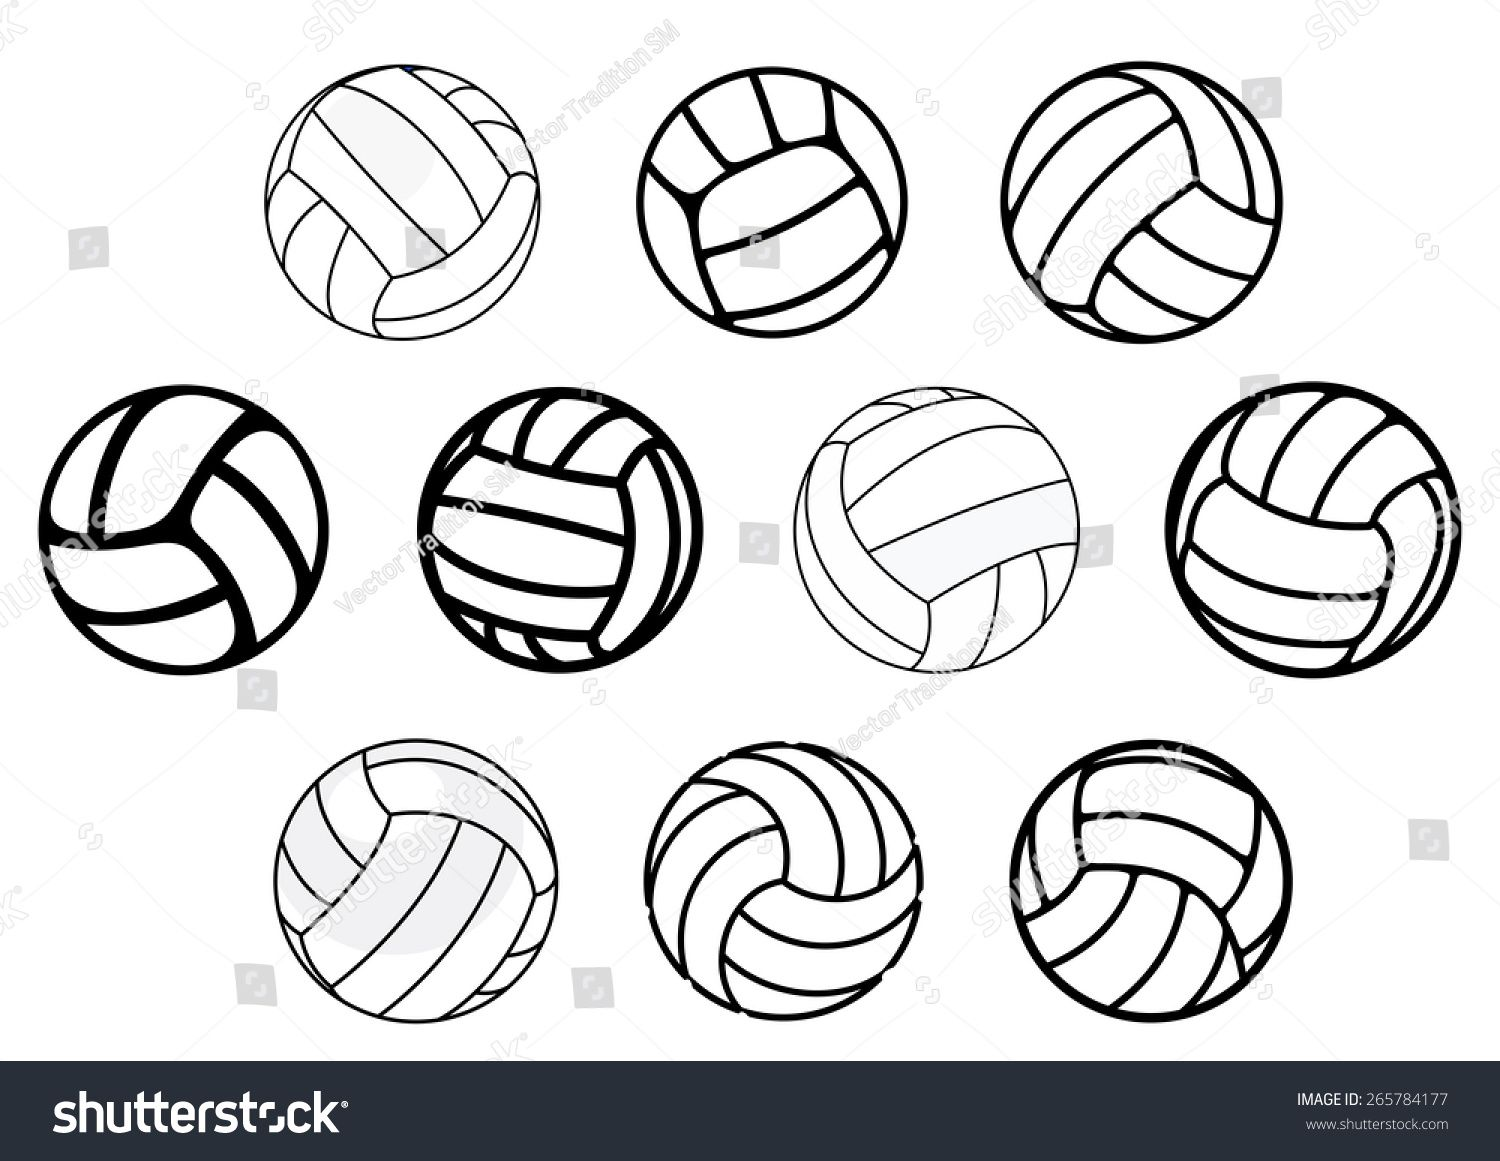 Outline And Cartoon Leather Volleyball Balls In Blue White And Gray Colors Isolated On White Background For Sporting Business Card Black Stock Images Leather